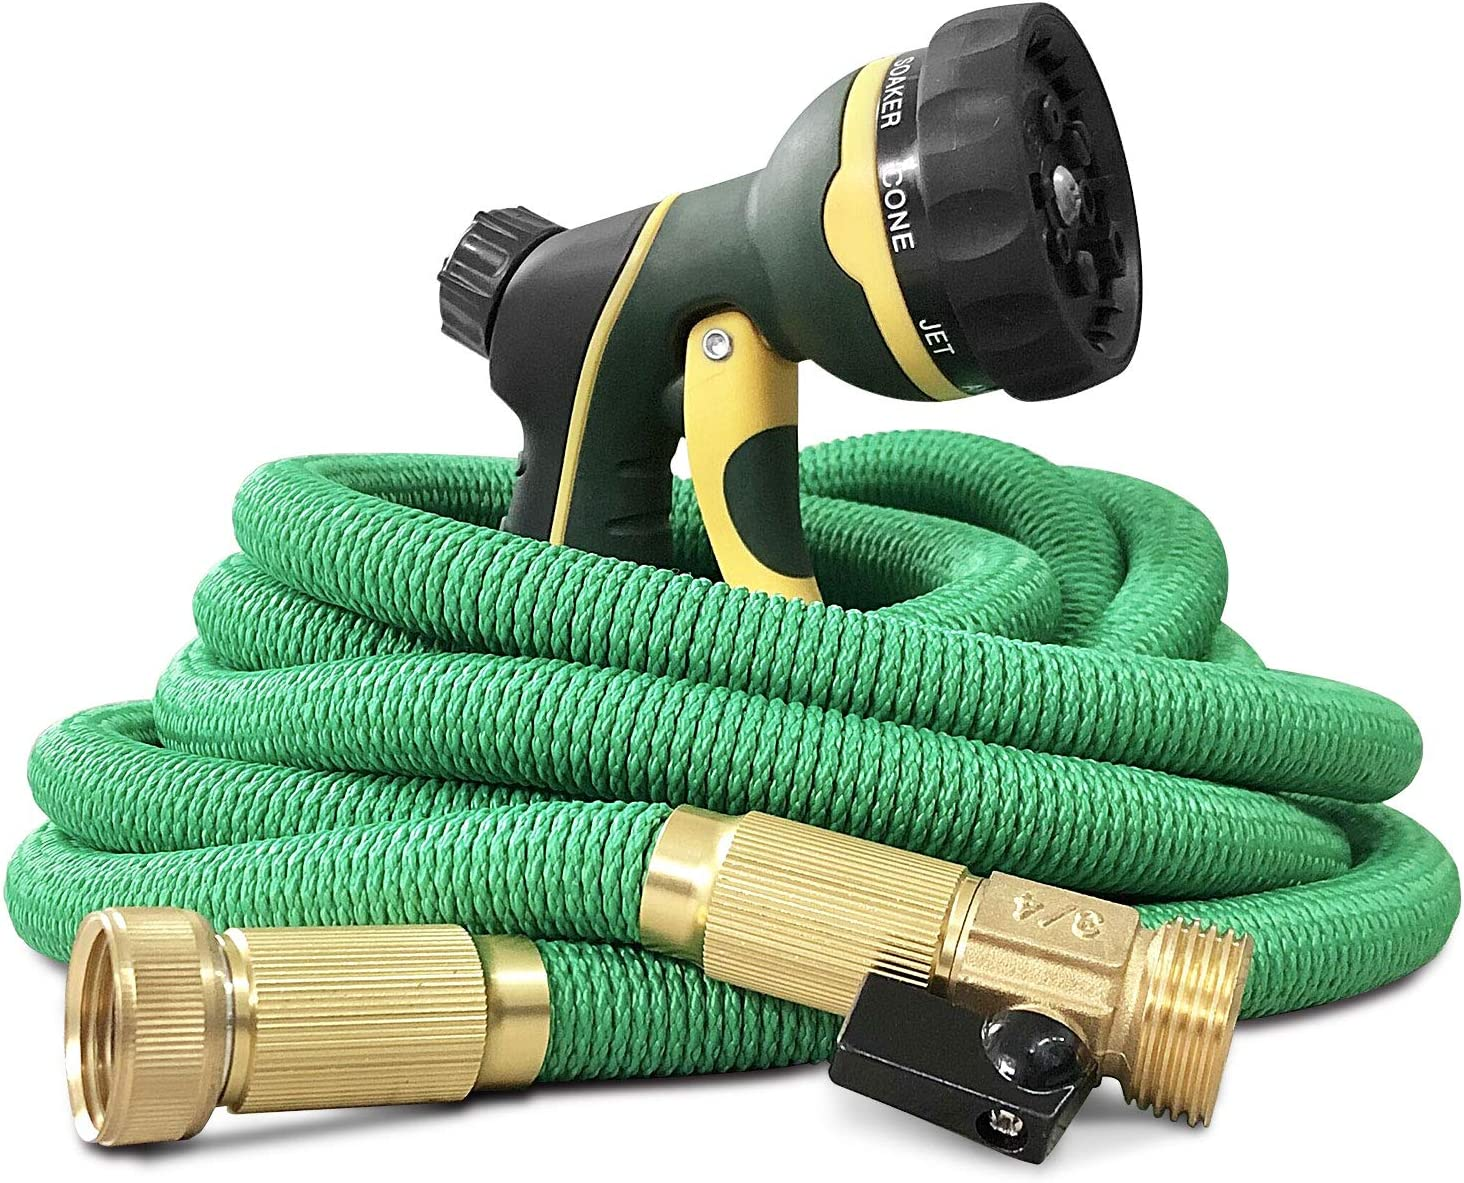 NGreen Expandable and Flexible Garden Hose - 25/50/75/100 Feet Strongest Triple Core Latex and Solid Brass Fittings Free Spray Nozzle 3/4 USA Standard Easy Storage Kink Free Water Hose (100 FT)